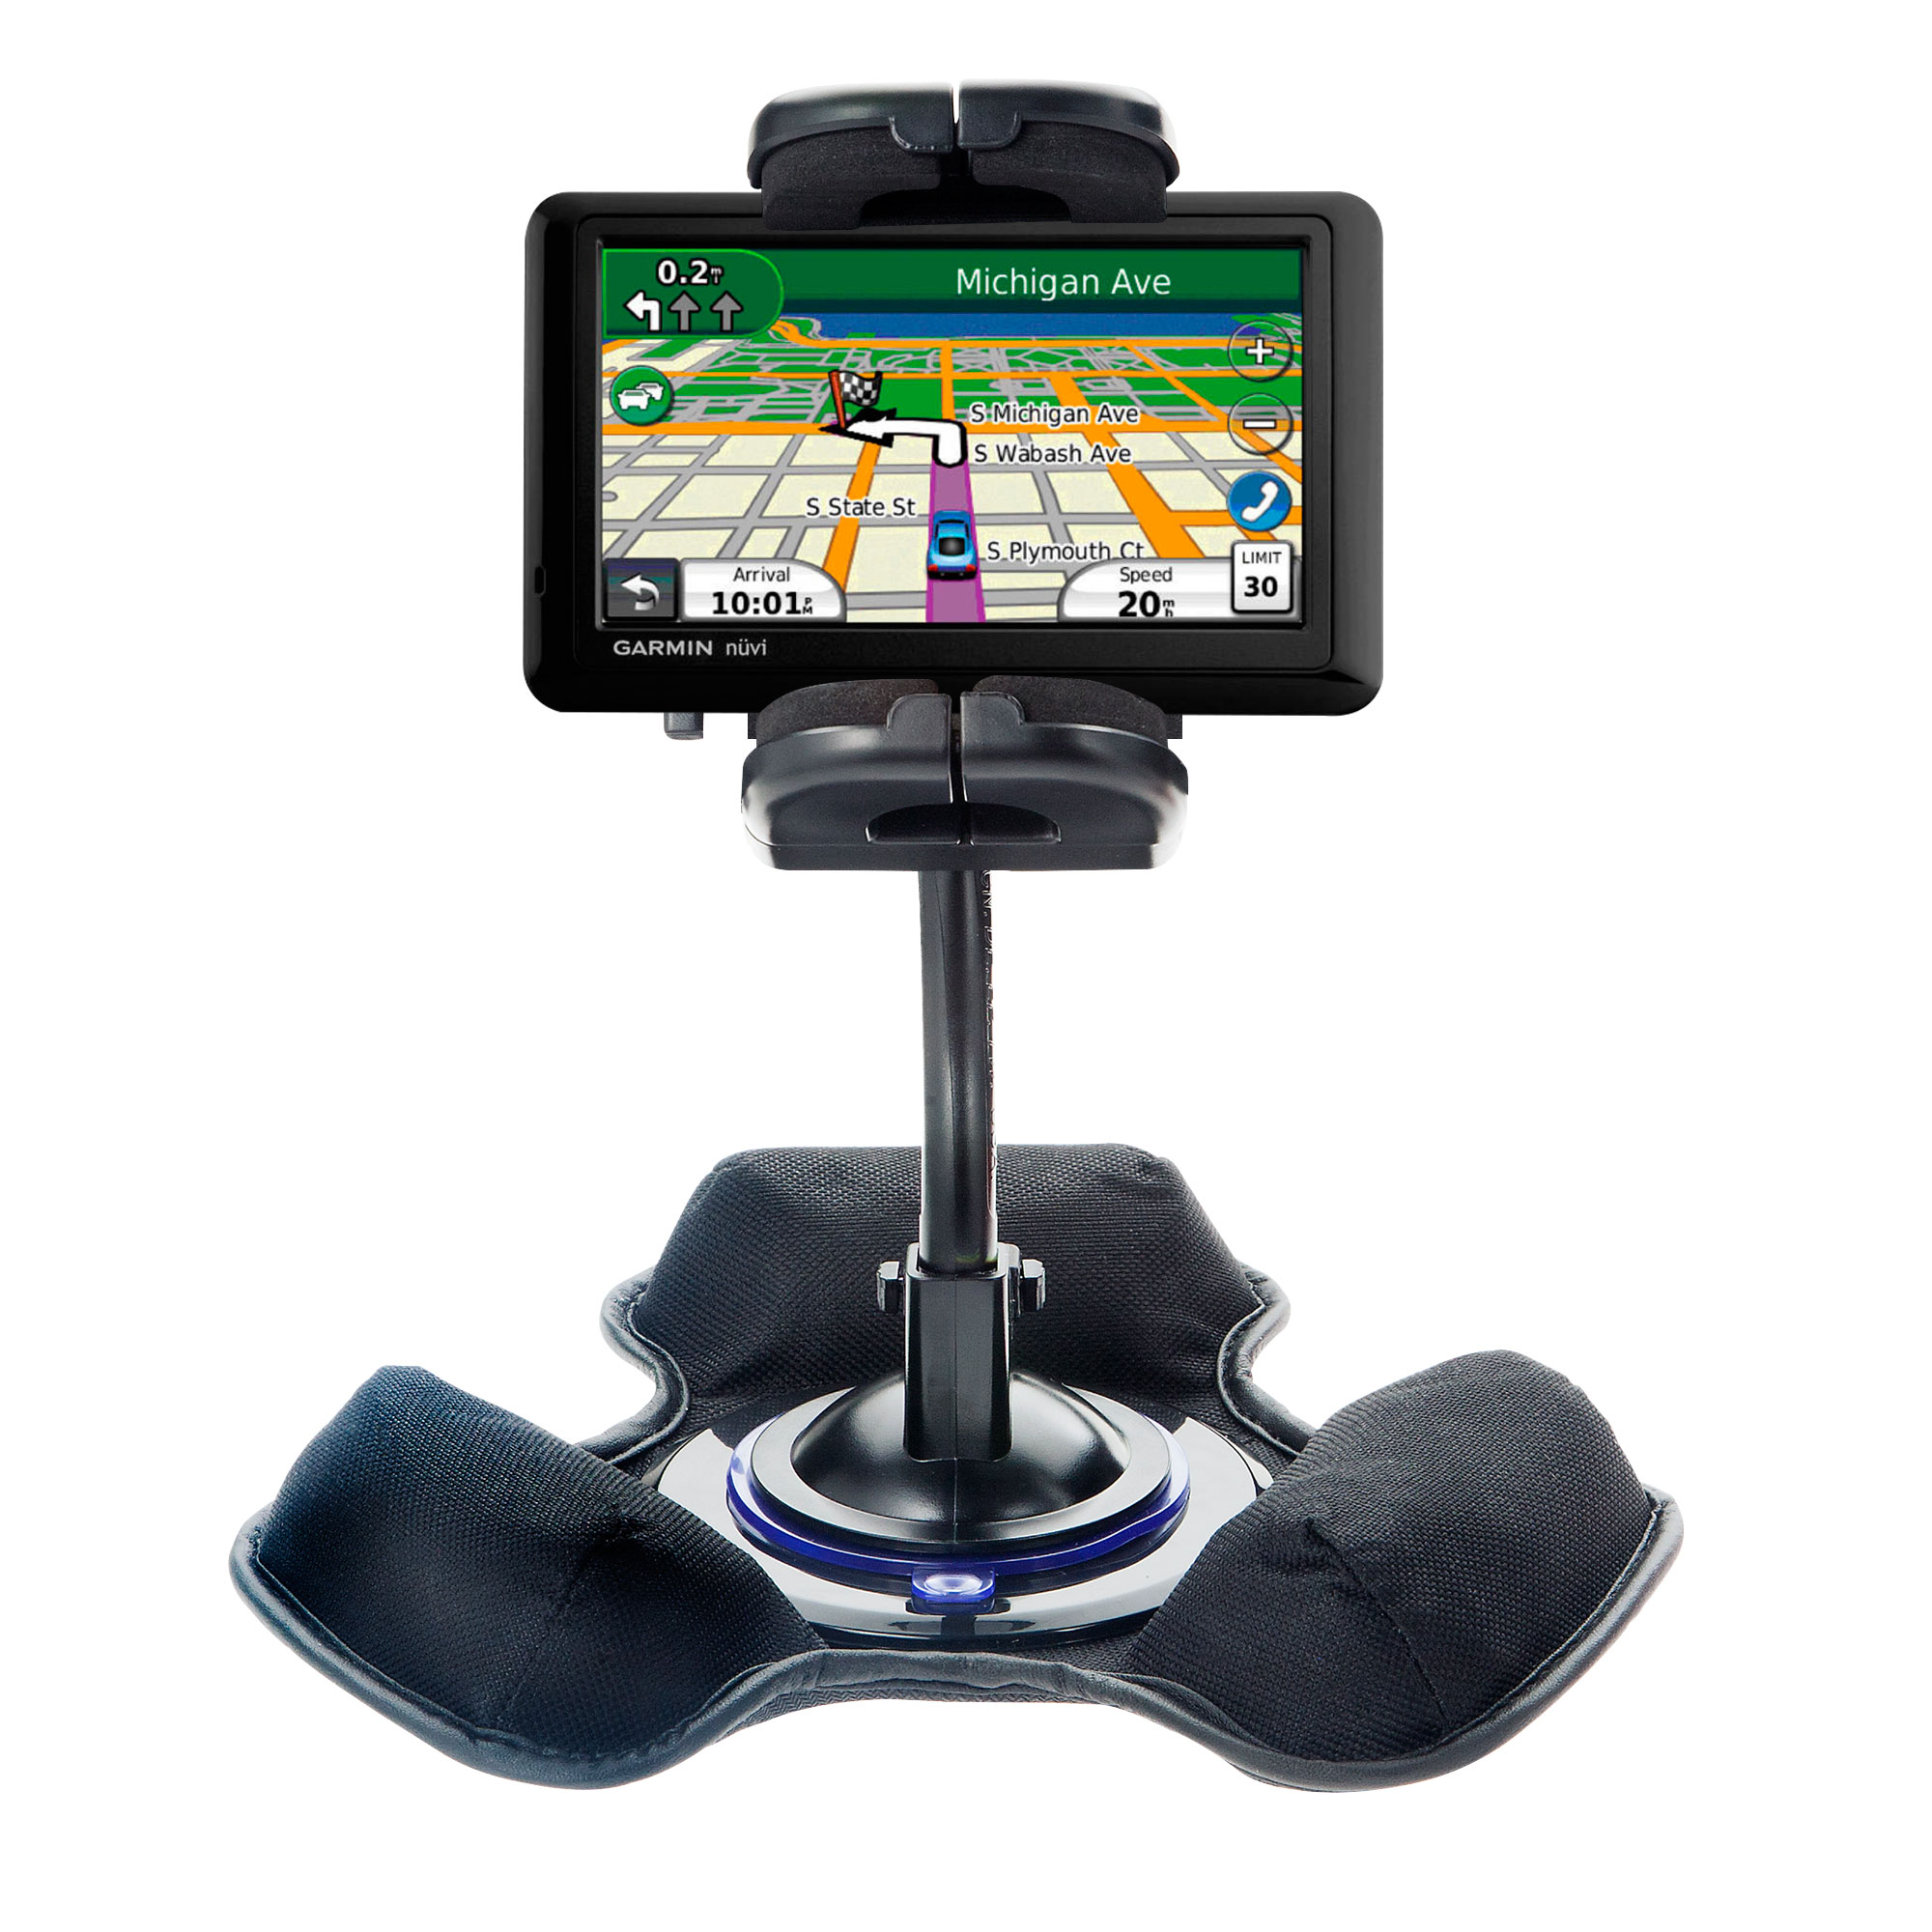 Dash and Windshield Holder compatible with the Garmin Nuvi 2350